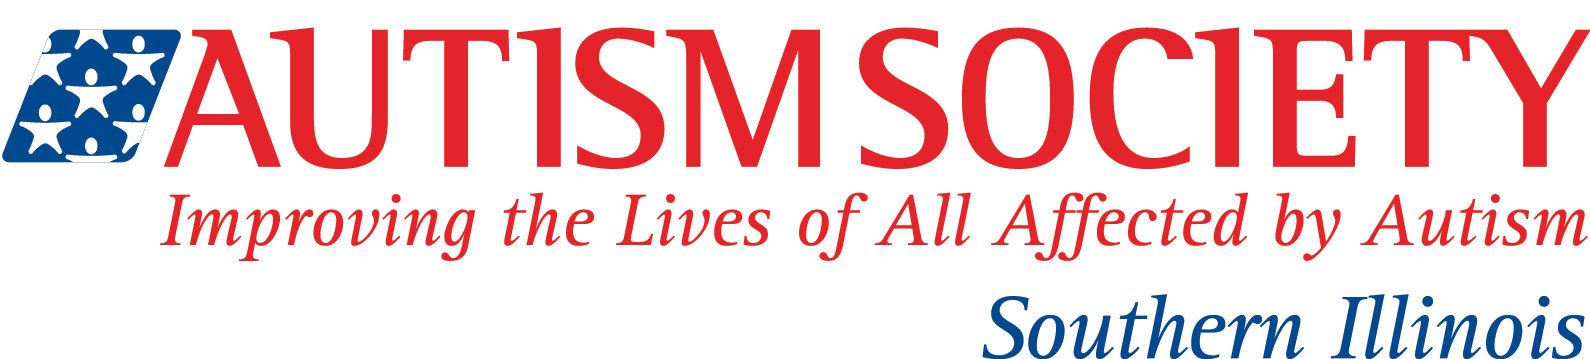 Autism Society of Southern Illinois